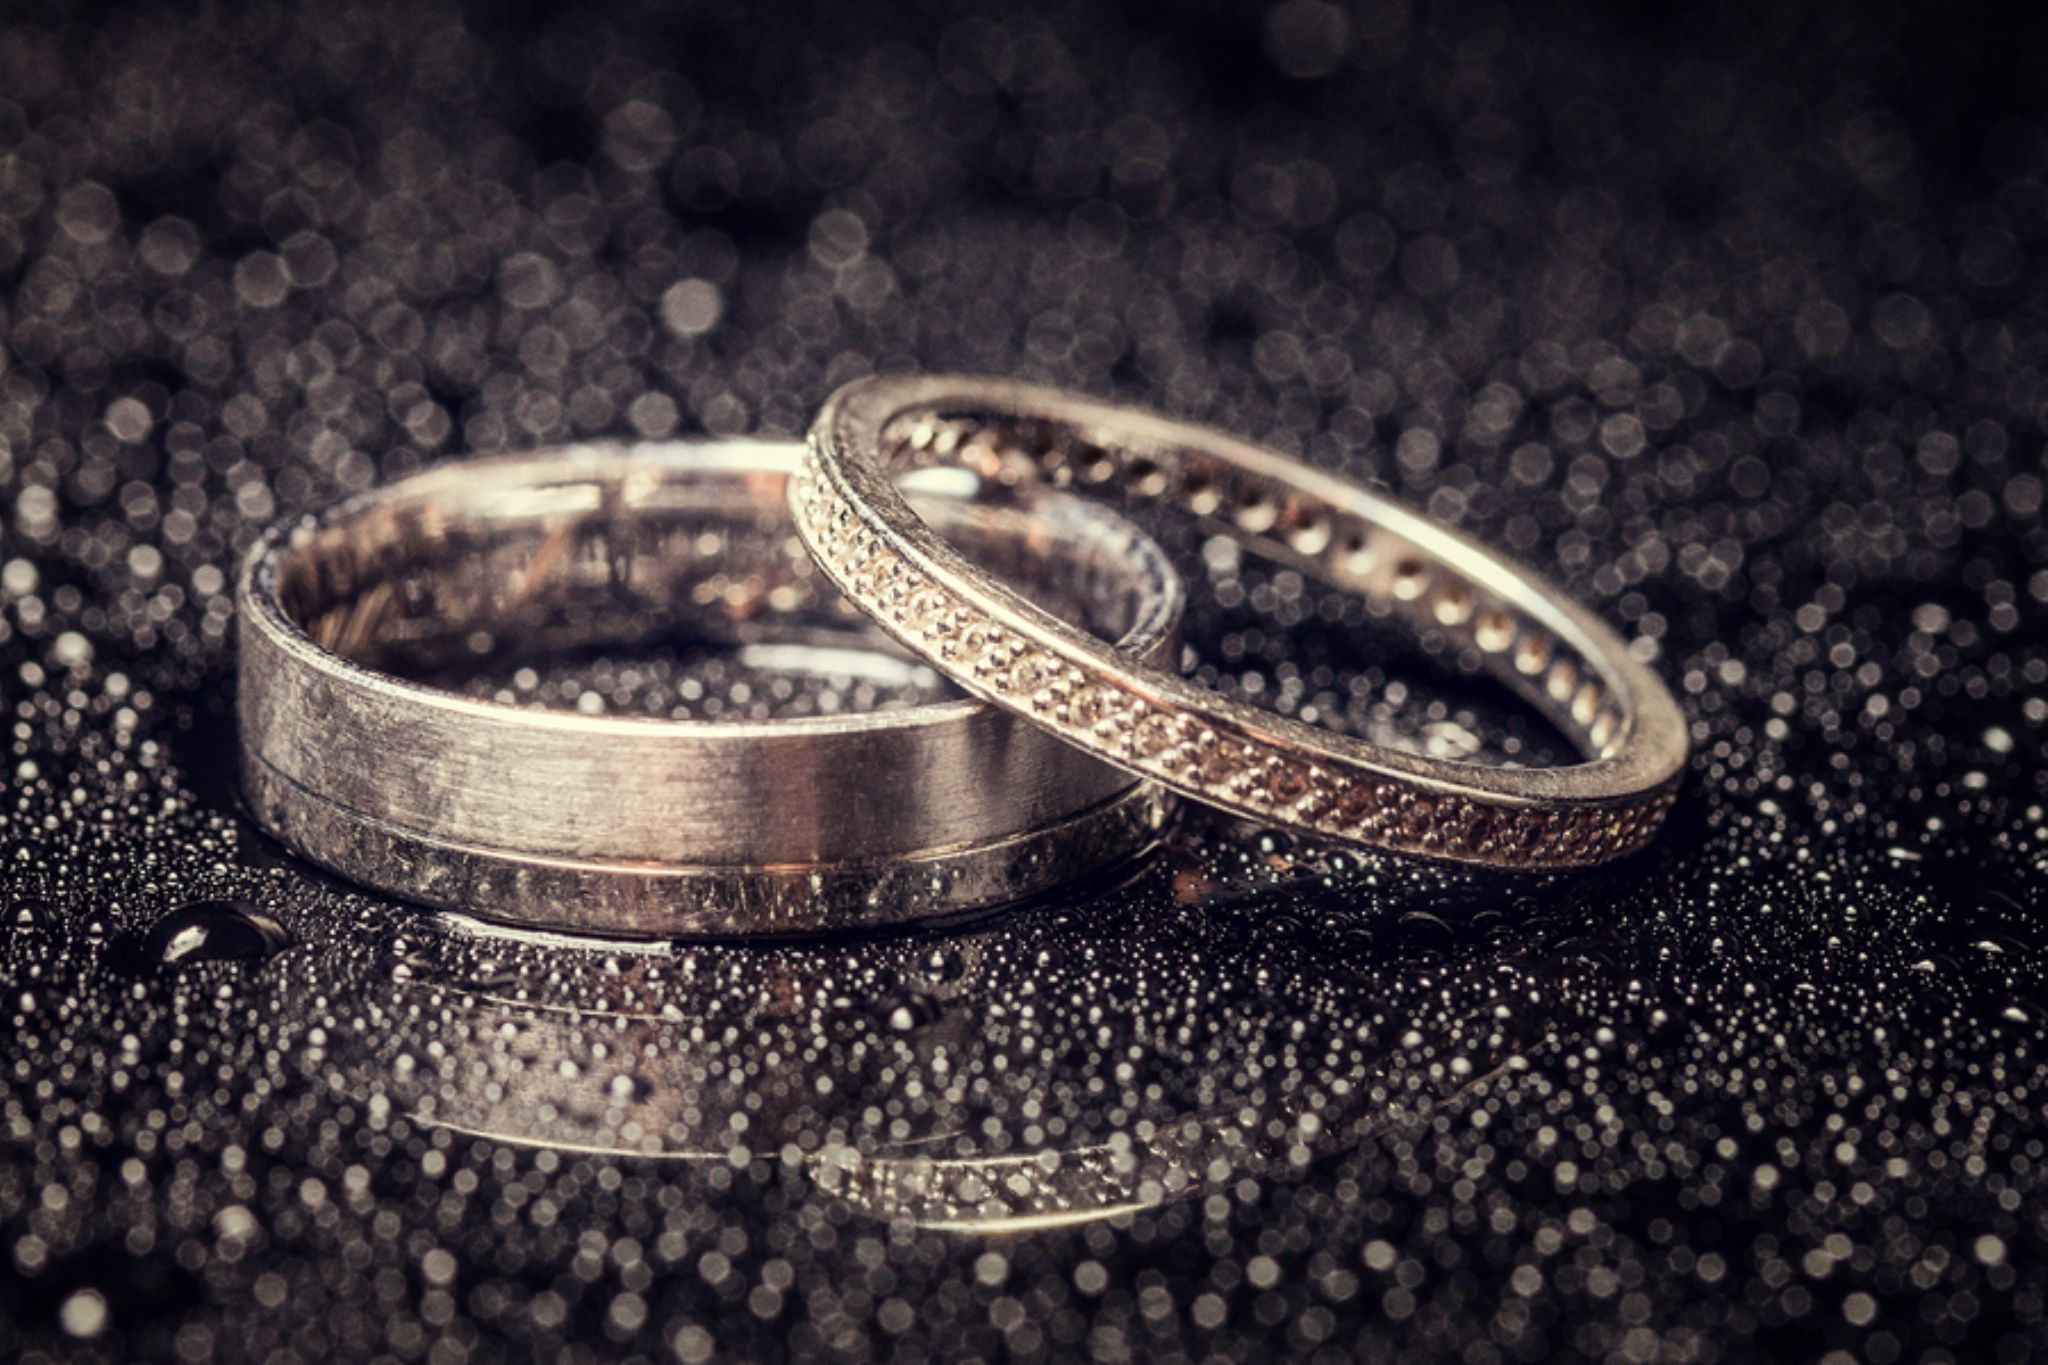 Rings by AM_Photography